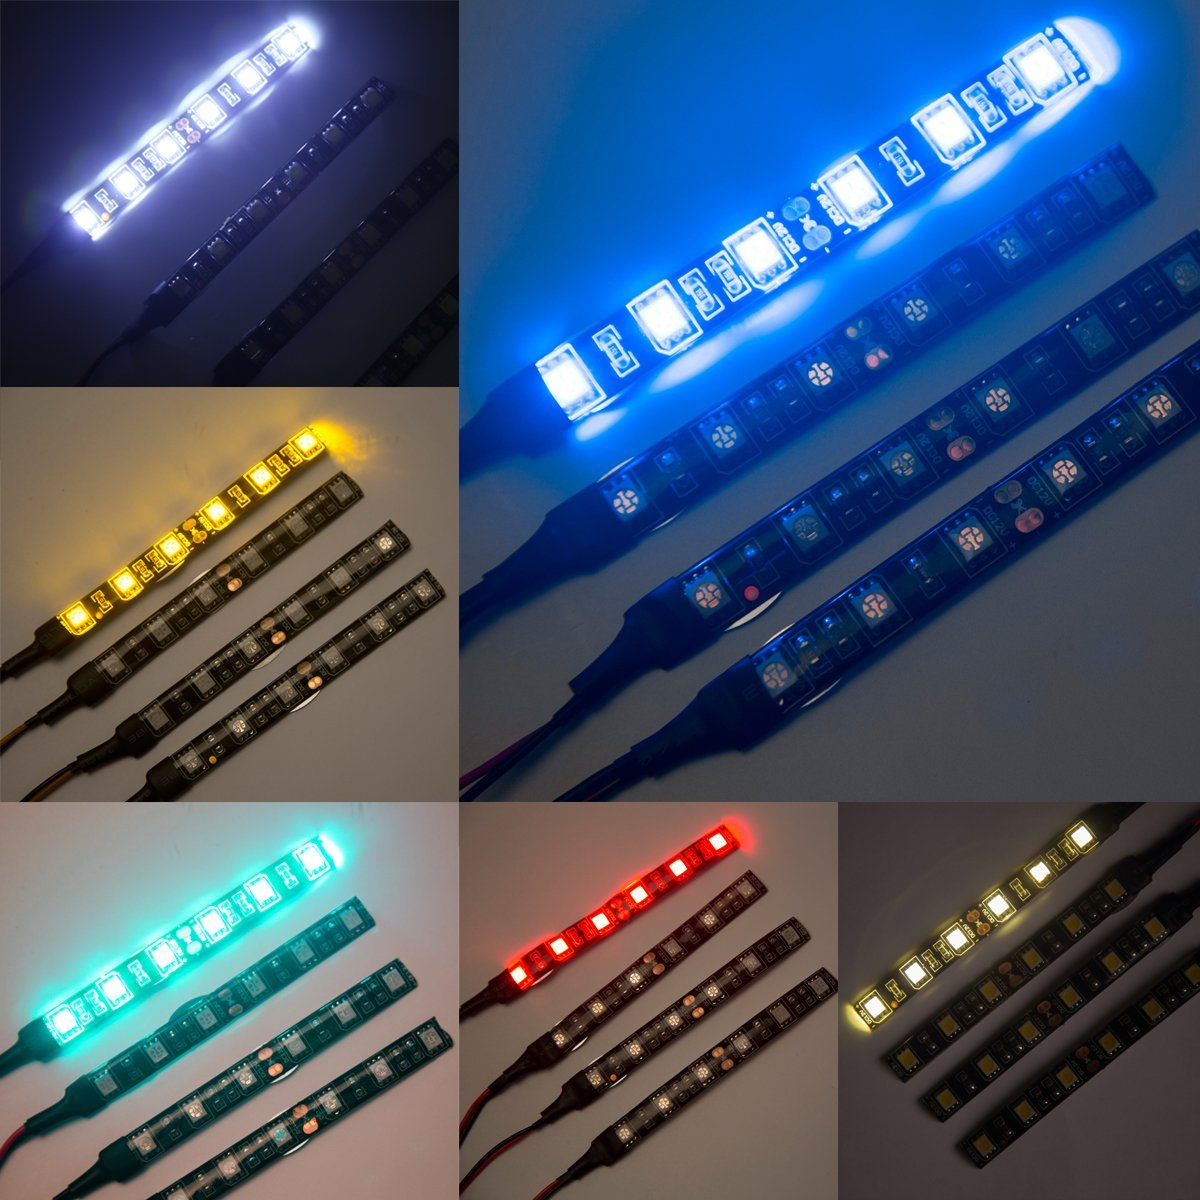 WOWLED 4 x 10cm Red Decoration LED Light Strip for Home Car Motocycle Indoor Outdoor Lighting 5050 LED 12V